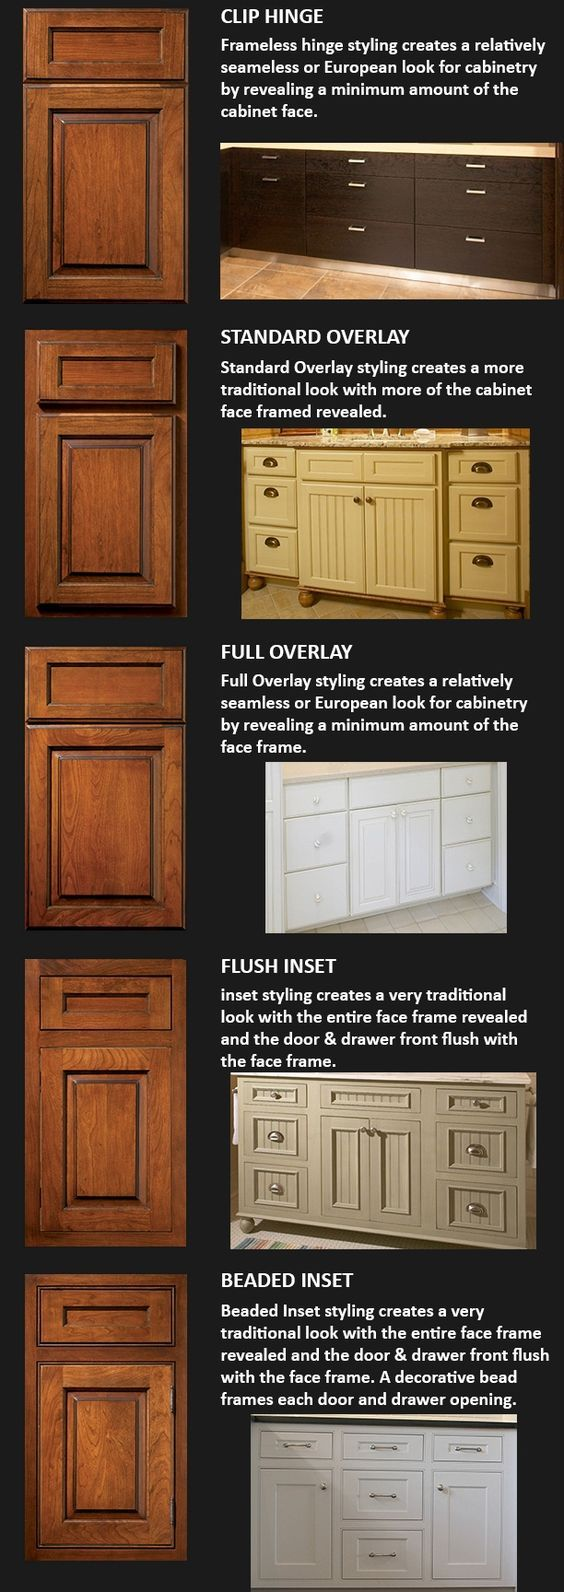 Cabinet Styles For Kitchen And Bathroom In 2020 Kitchen Cabinet Door Styles Cabinet Door Styles Kitchen Cabinet Doors